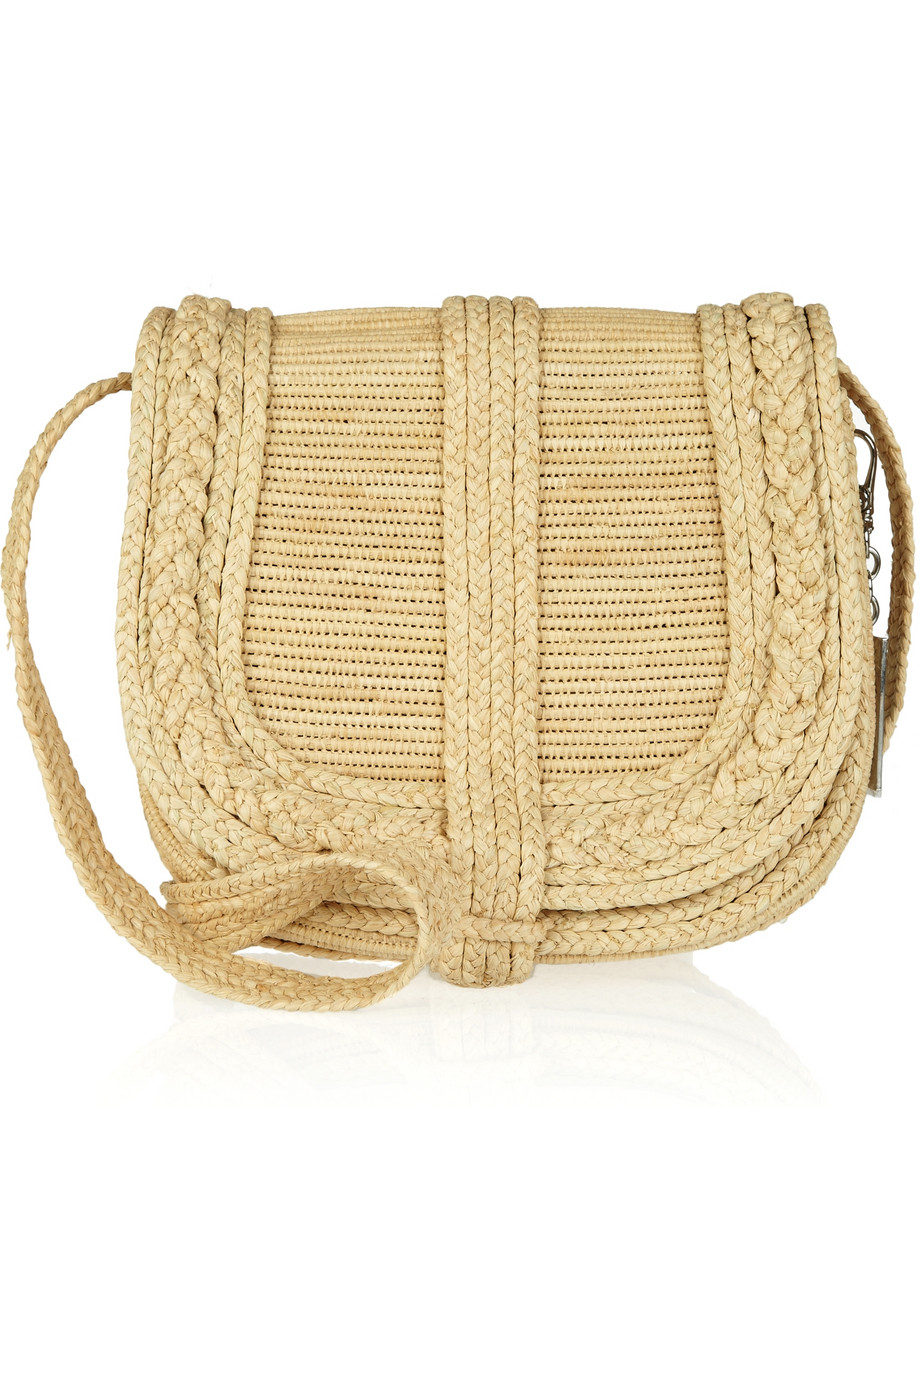 ralph collection woven straw crossbody bag in beige